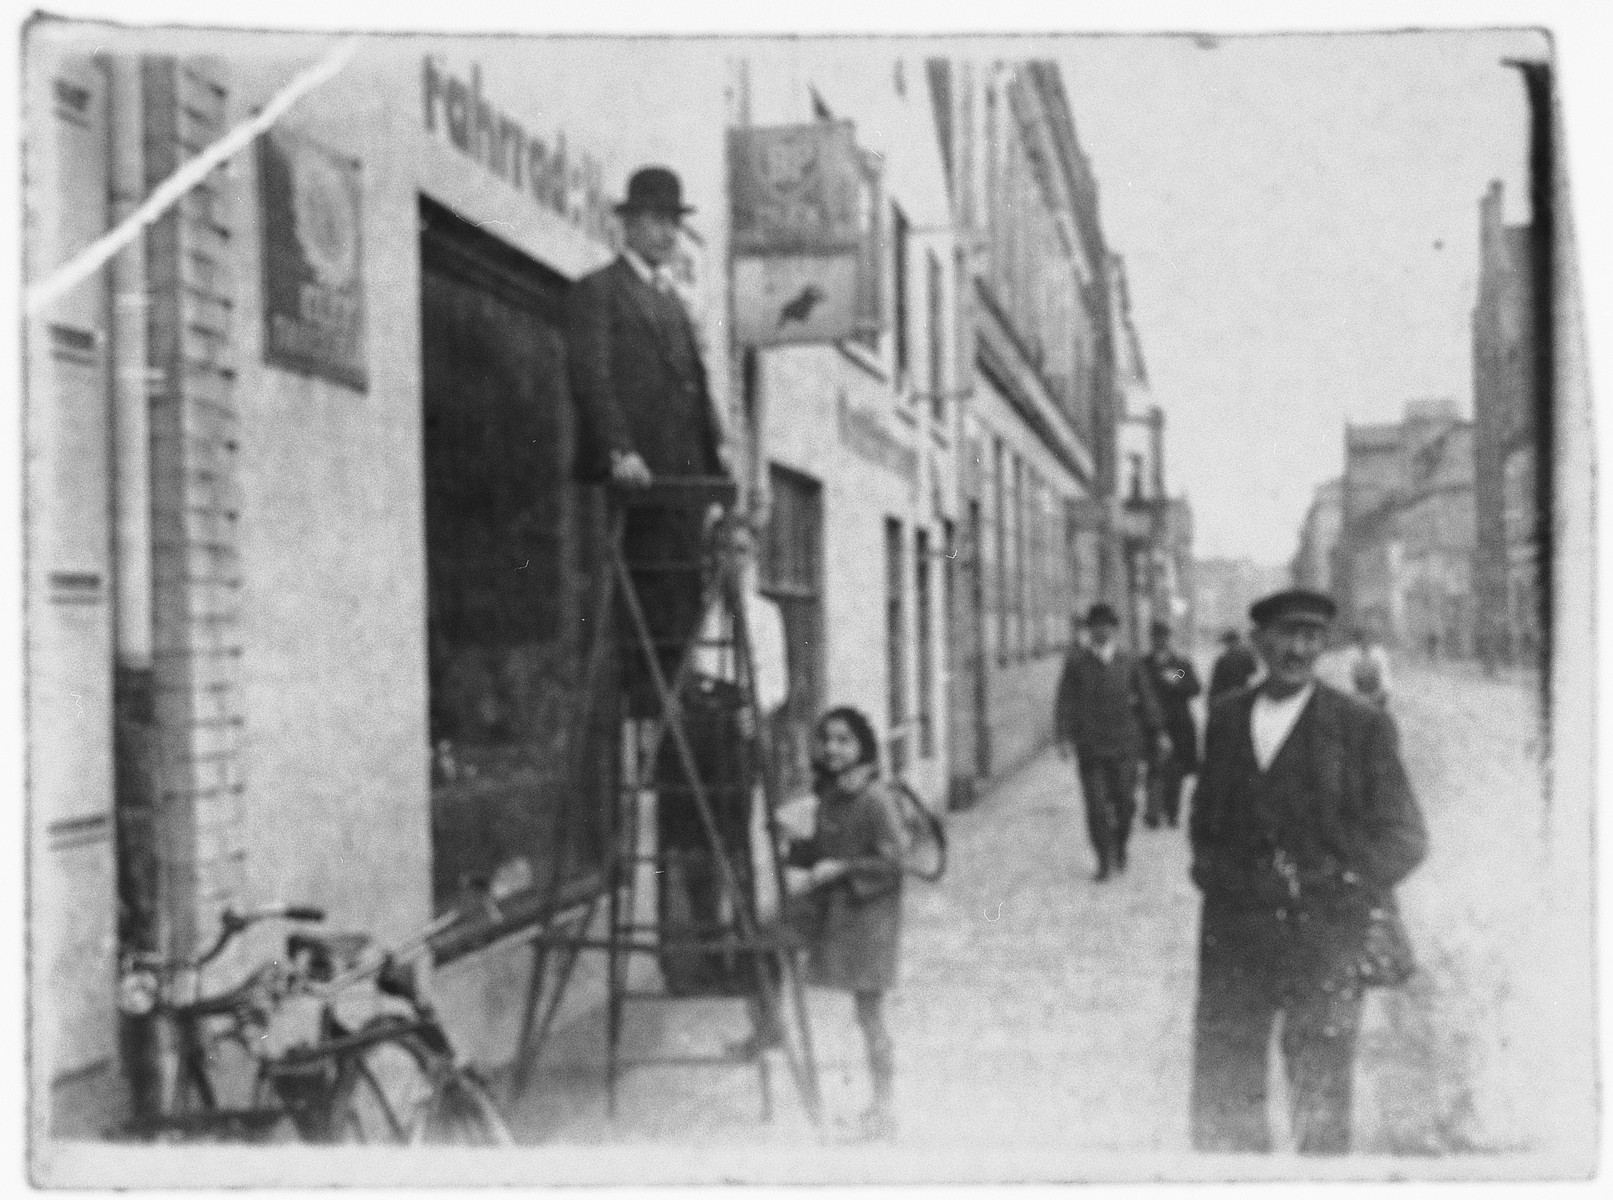 Josef Zwienicki stands on a ladder outside his bicycle store in Bremen.  Below him is his daughter Liesel.  To her left is a German customer who later collaborated in the murder of his wife.